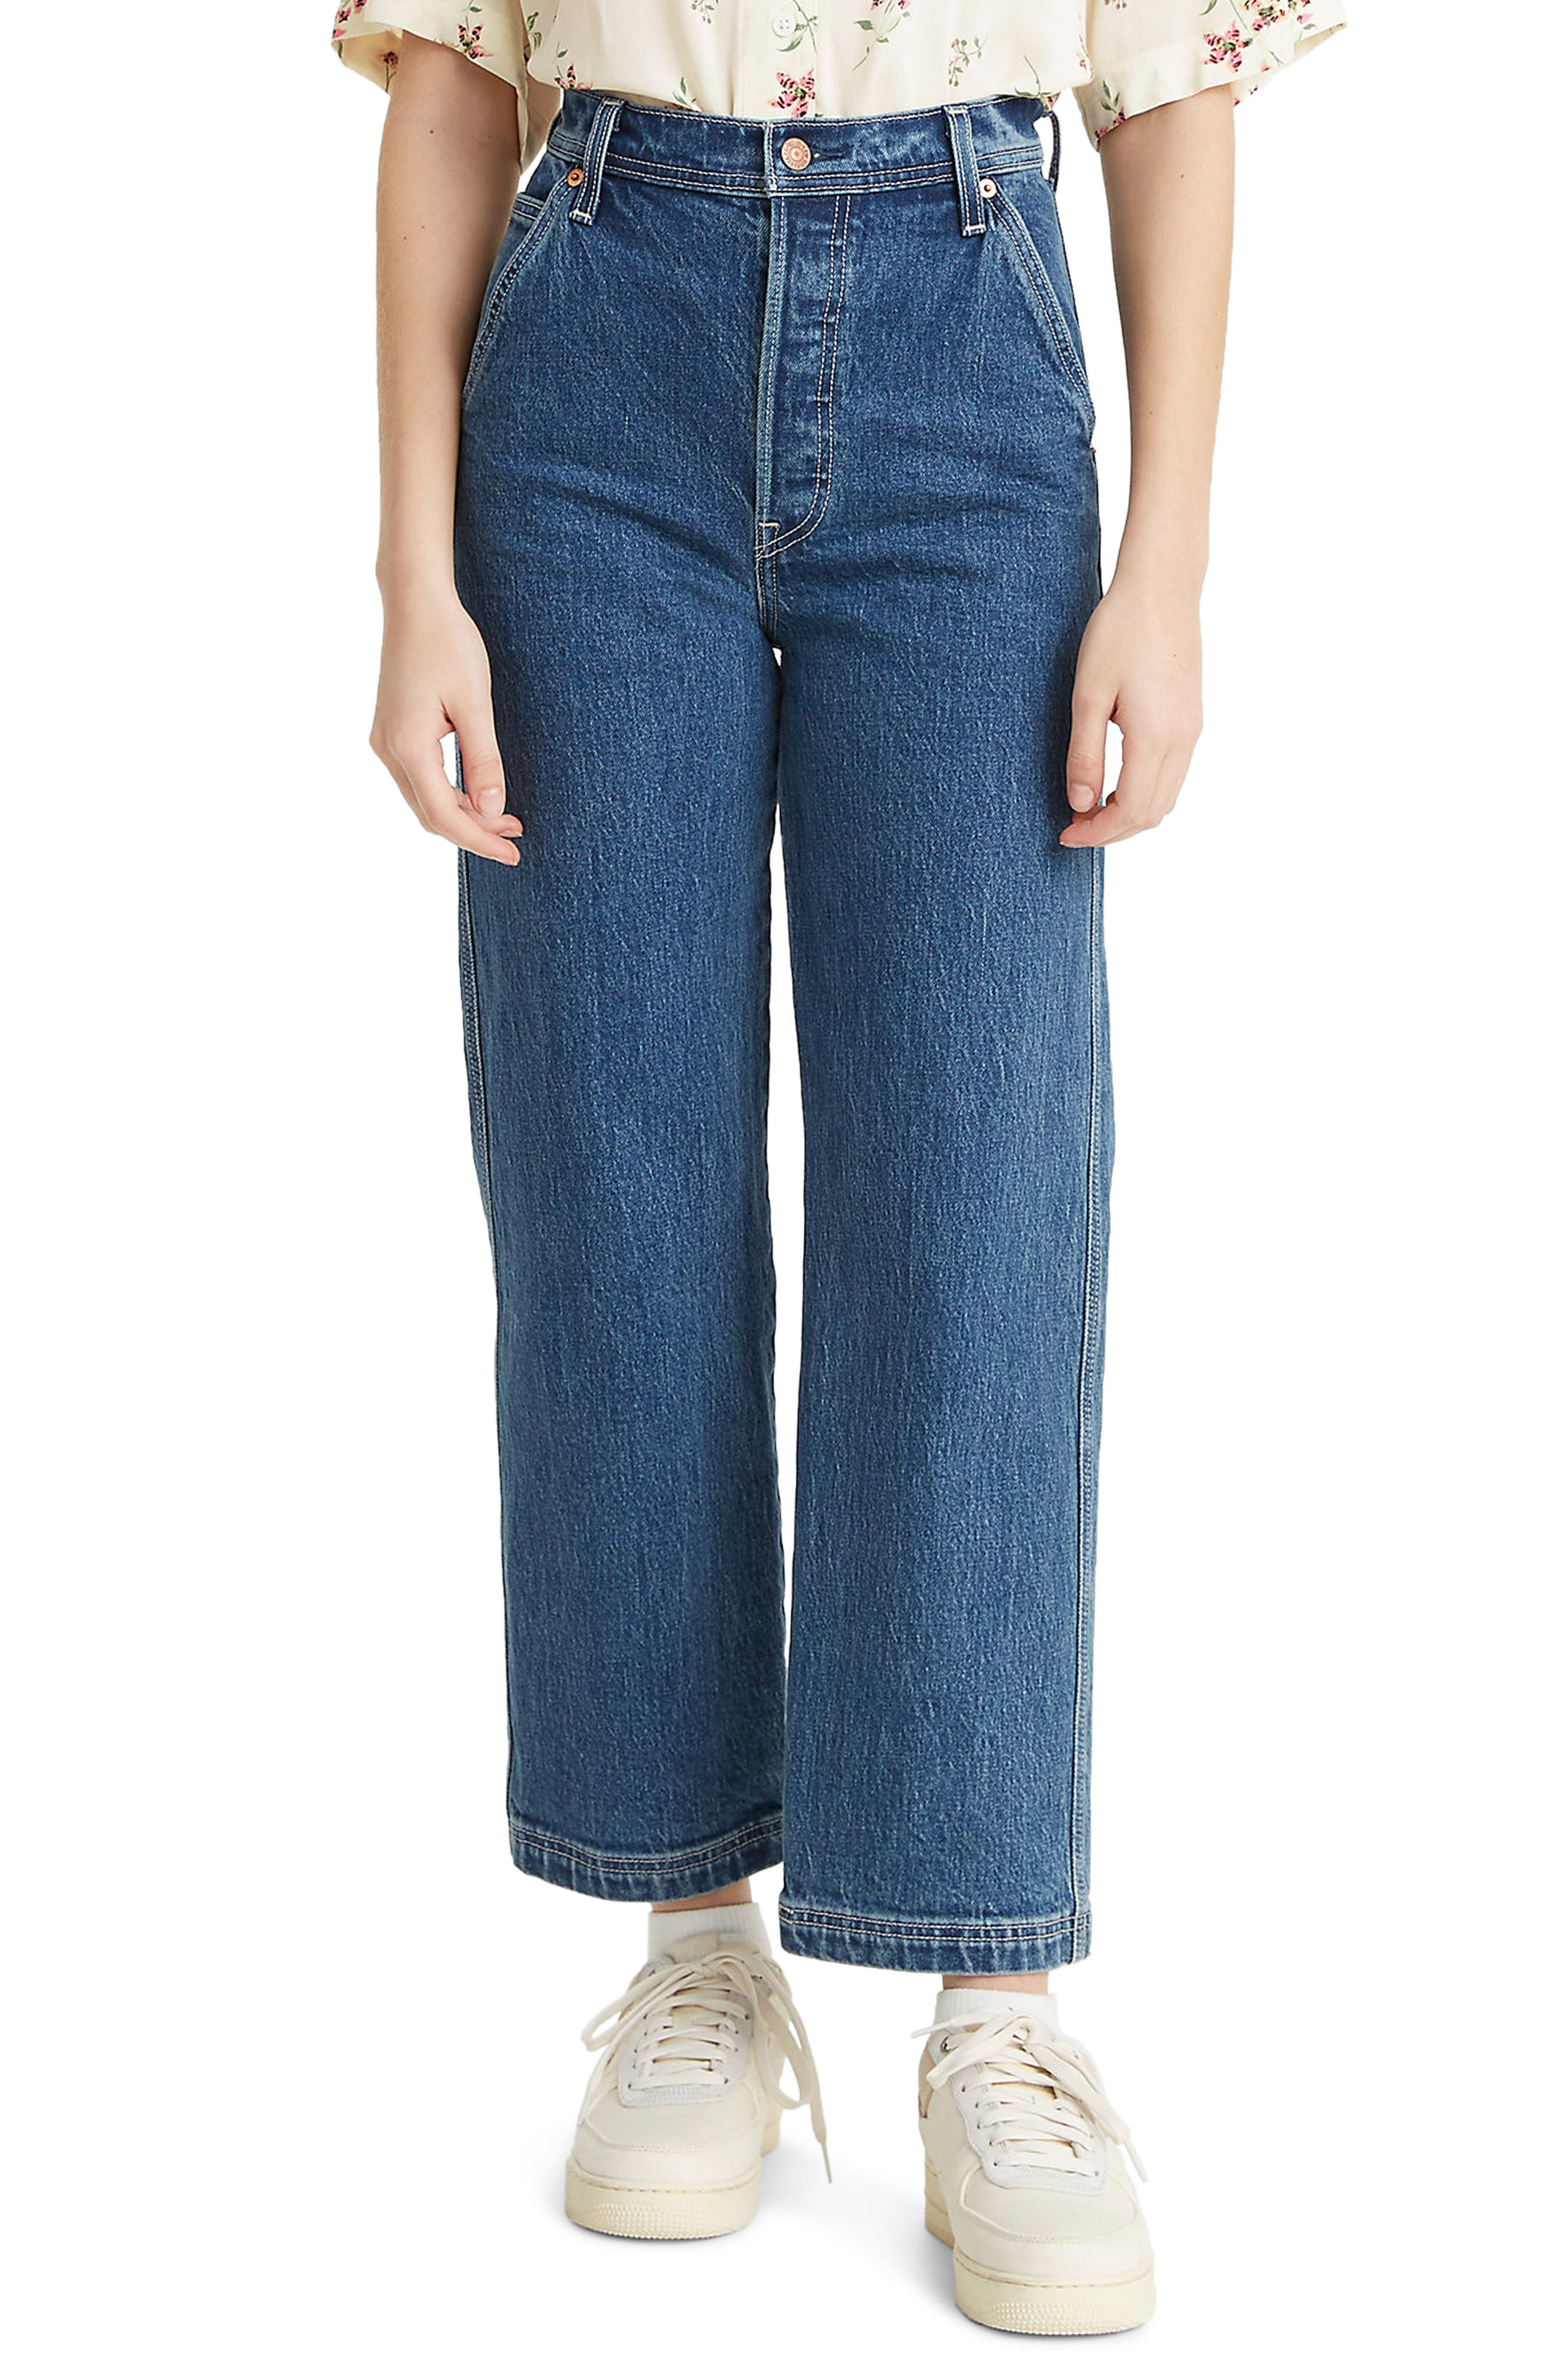 Levi's® Ribcage High Waist Straight Leg Utility Jeans (Nine to Five)   Nordstrom